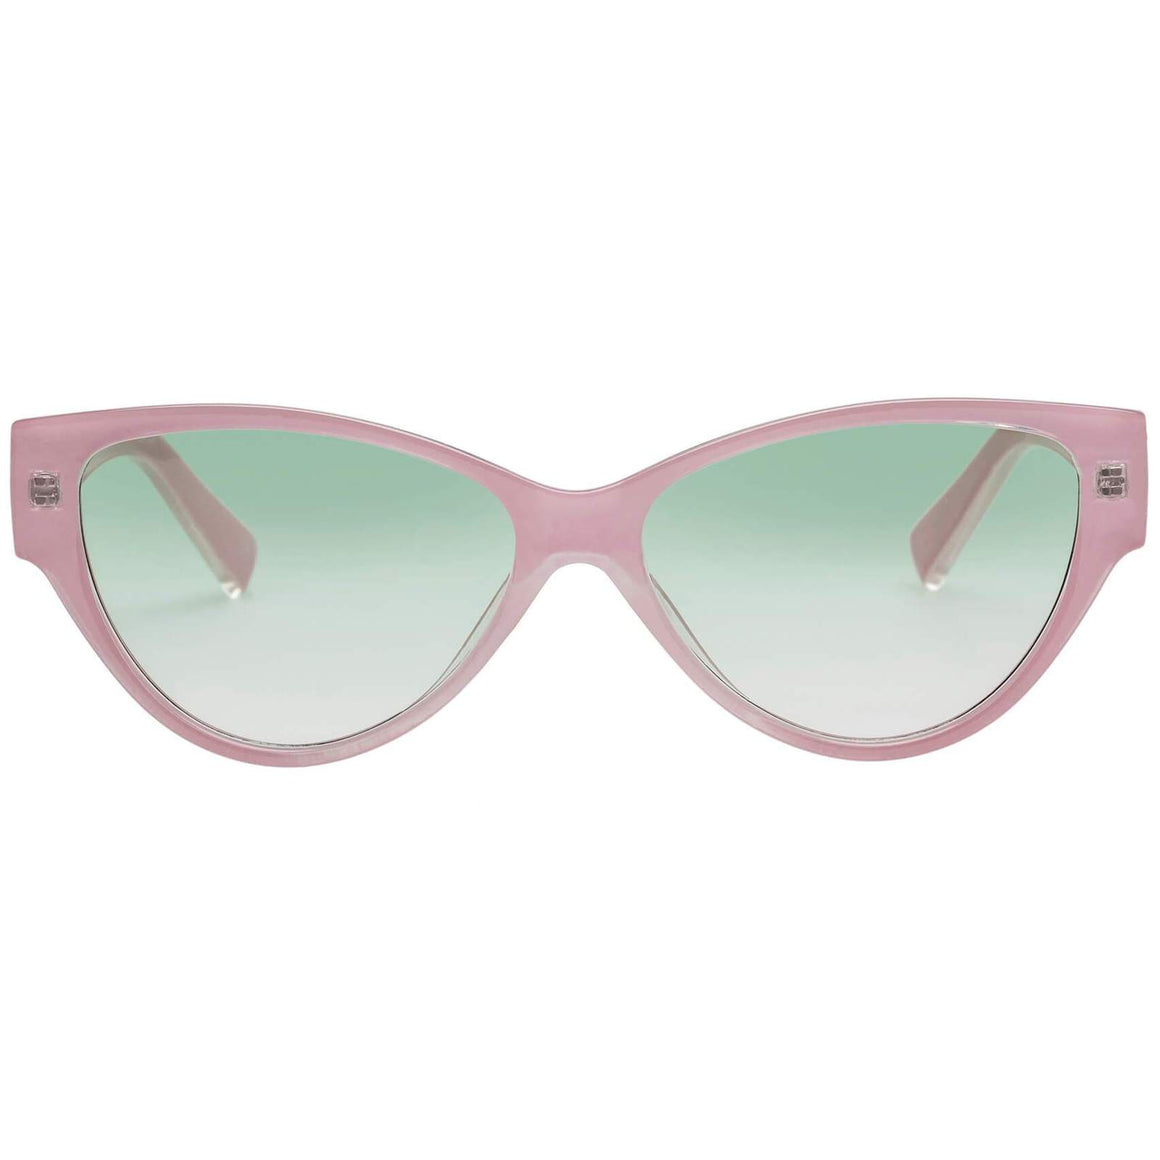 Eureka Apple Blossom-Sunglasses-Le Specs-Max & Riley